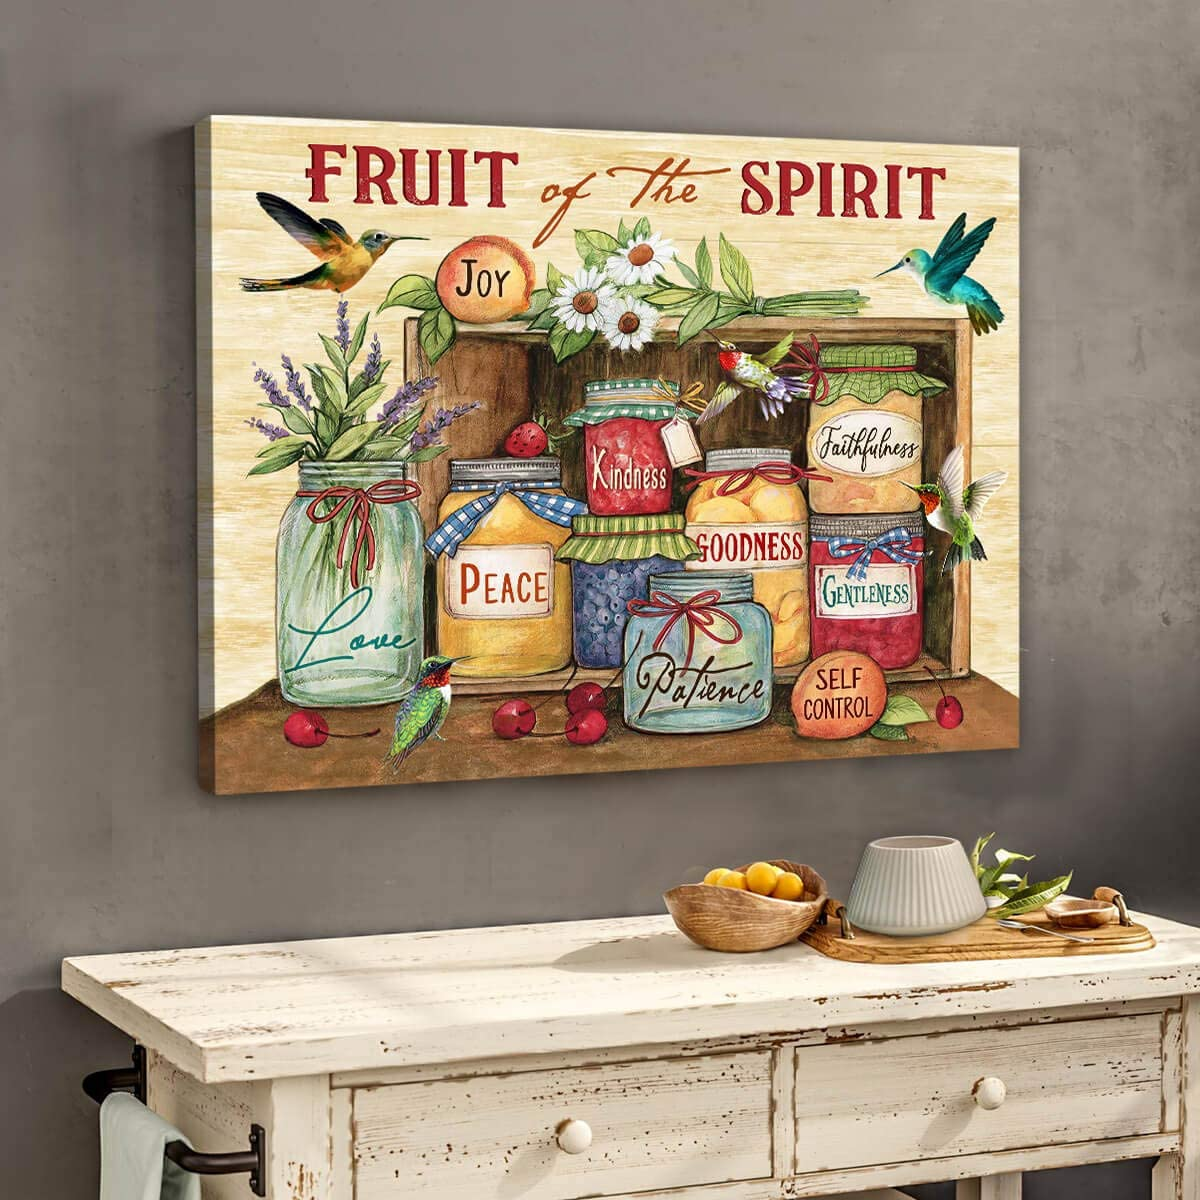 Fruit of the spirit Hummingbird Canvas Wall Art Decor 0.75 Inch Frame Canvas Art Gifts For Christmas, Birthday, Valentine's Day Thanksgiving Canvas Home Decor (24 in x 32 in)